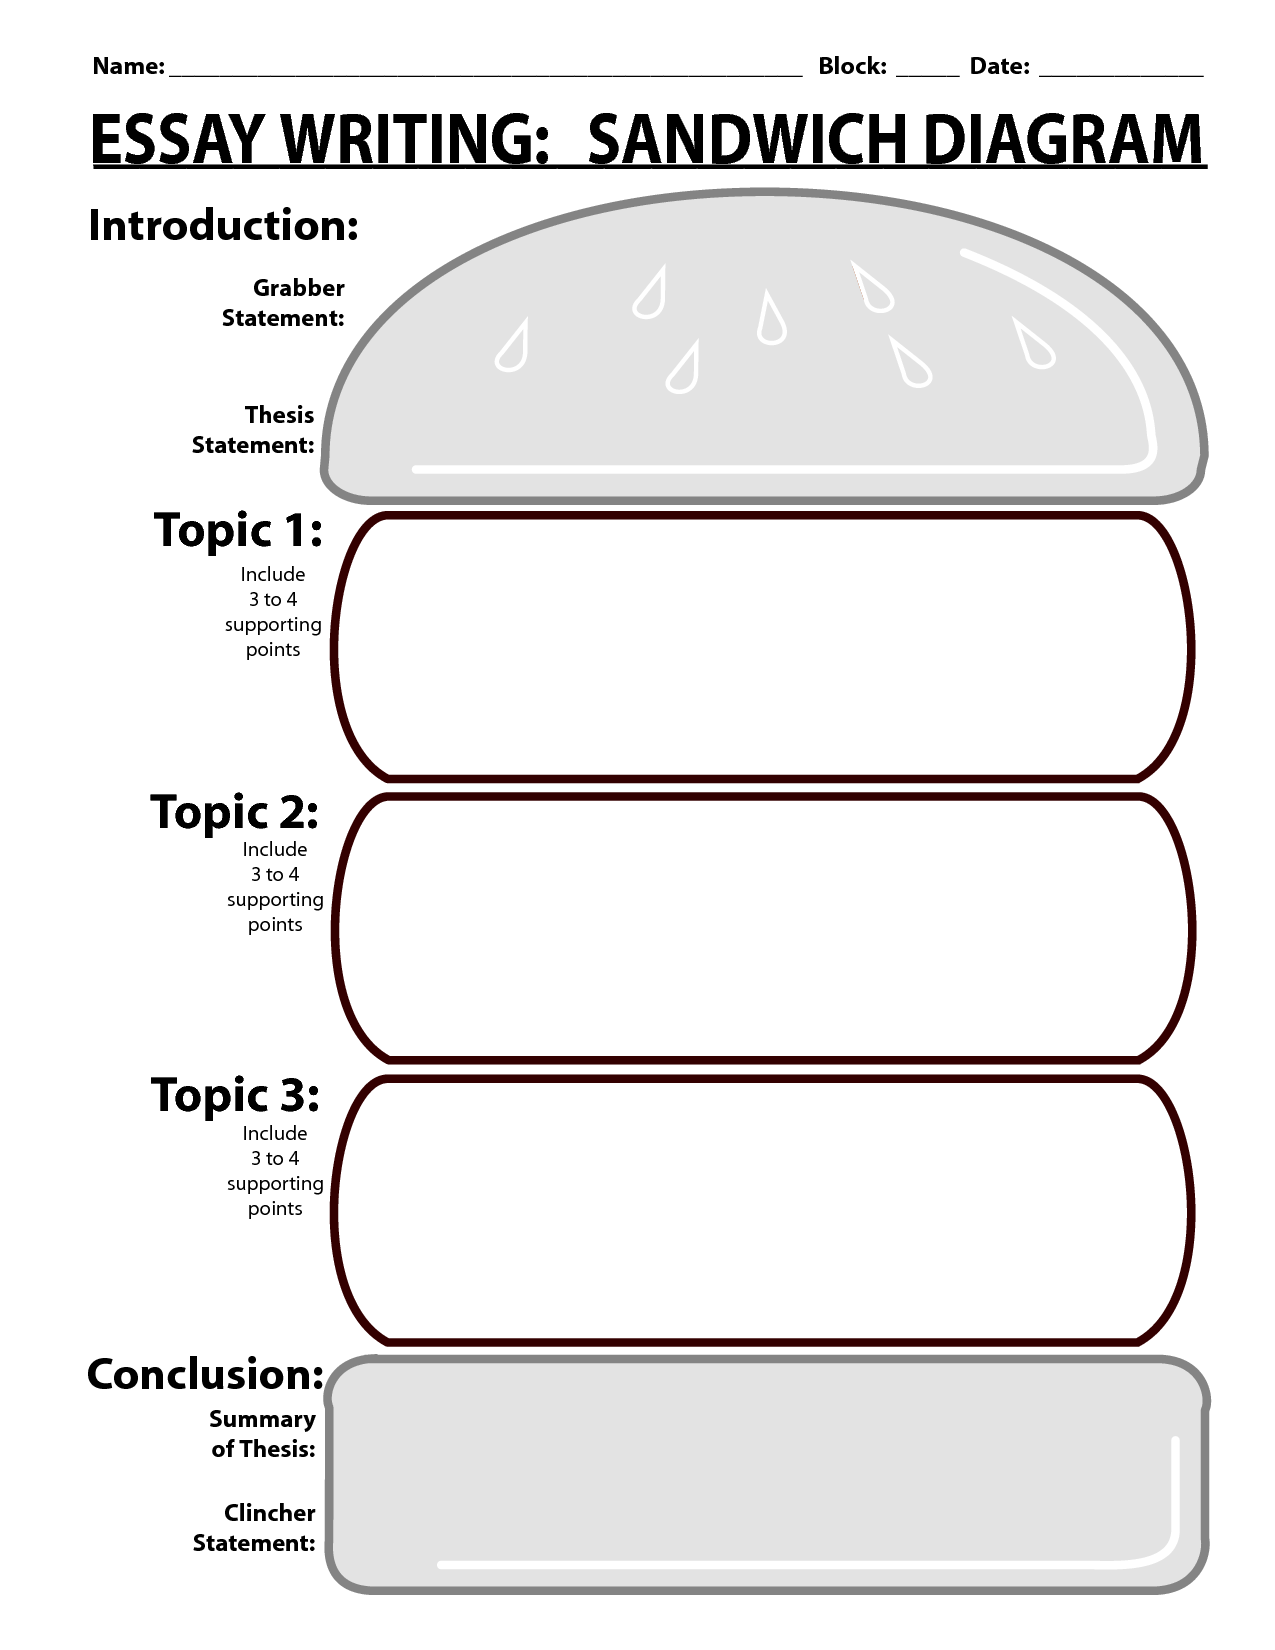 Essay Writing Sandwich Diagram Racing Ignition Switch Panel Wiring Template Pdf